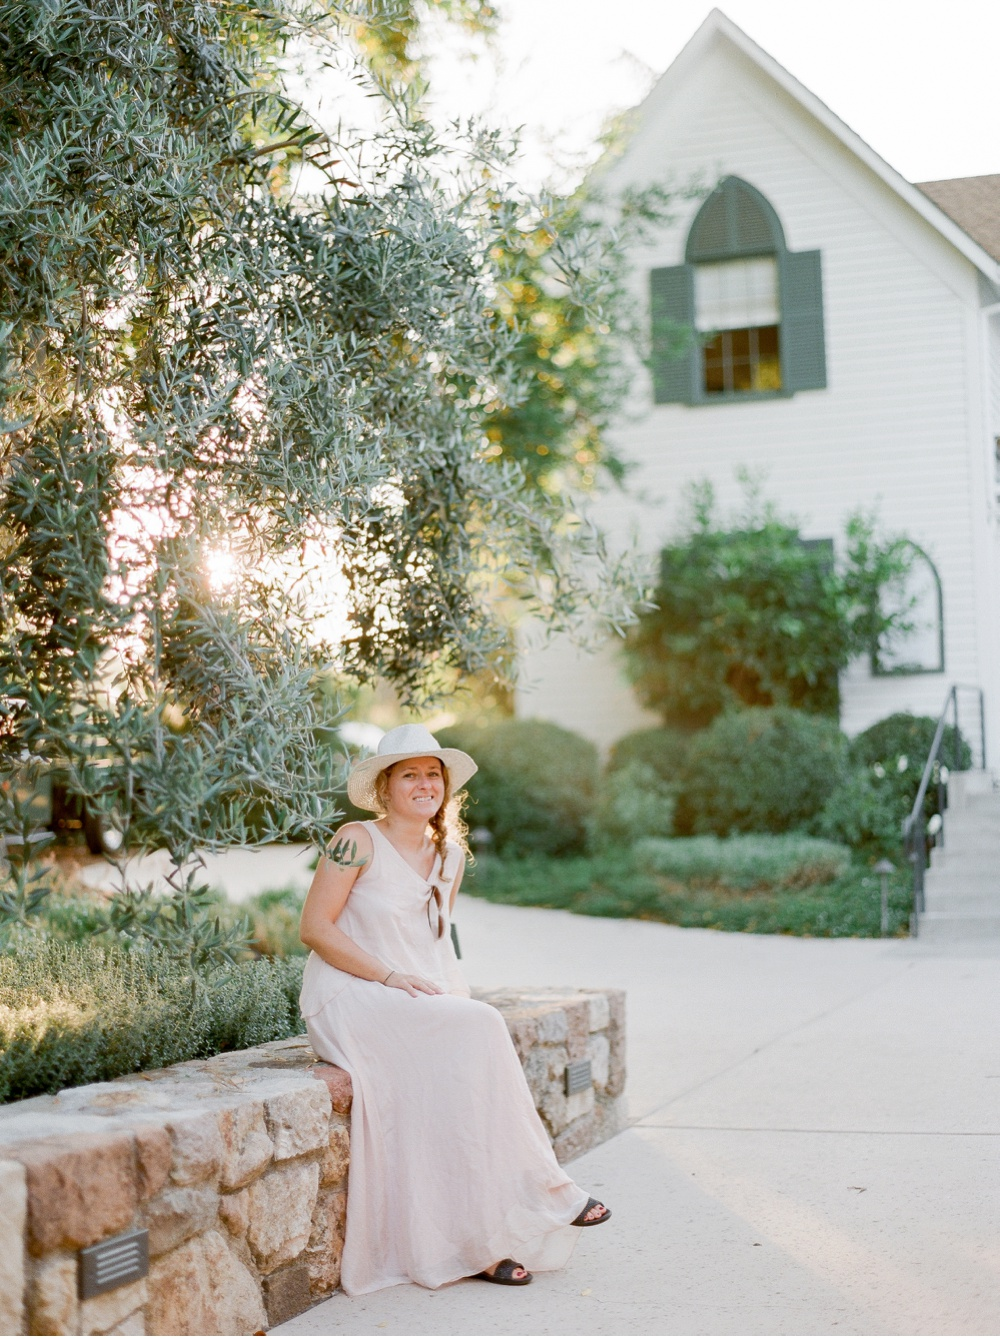 California_NapaValley_Wedding_Photographer©MadalinaSheldon_0007.jpg